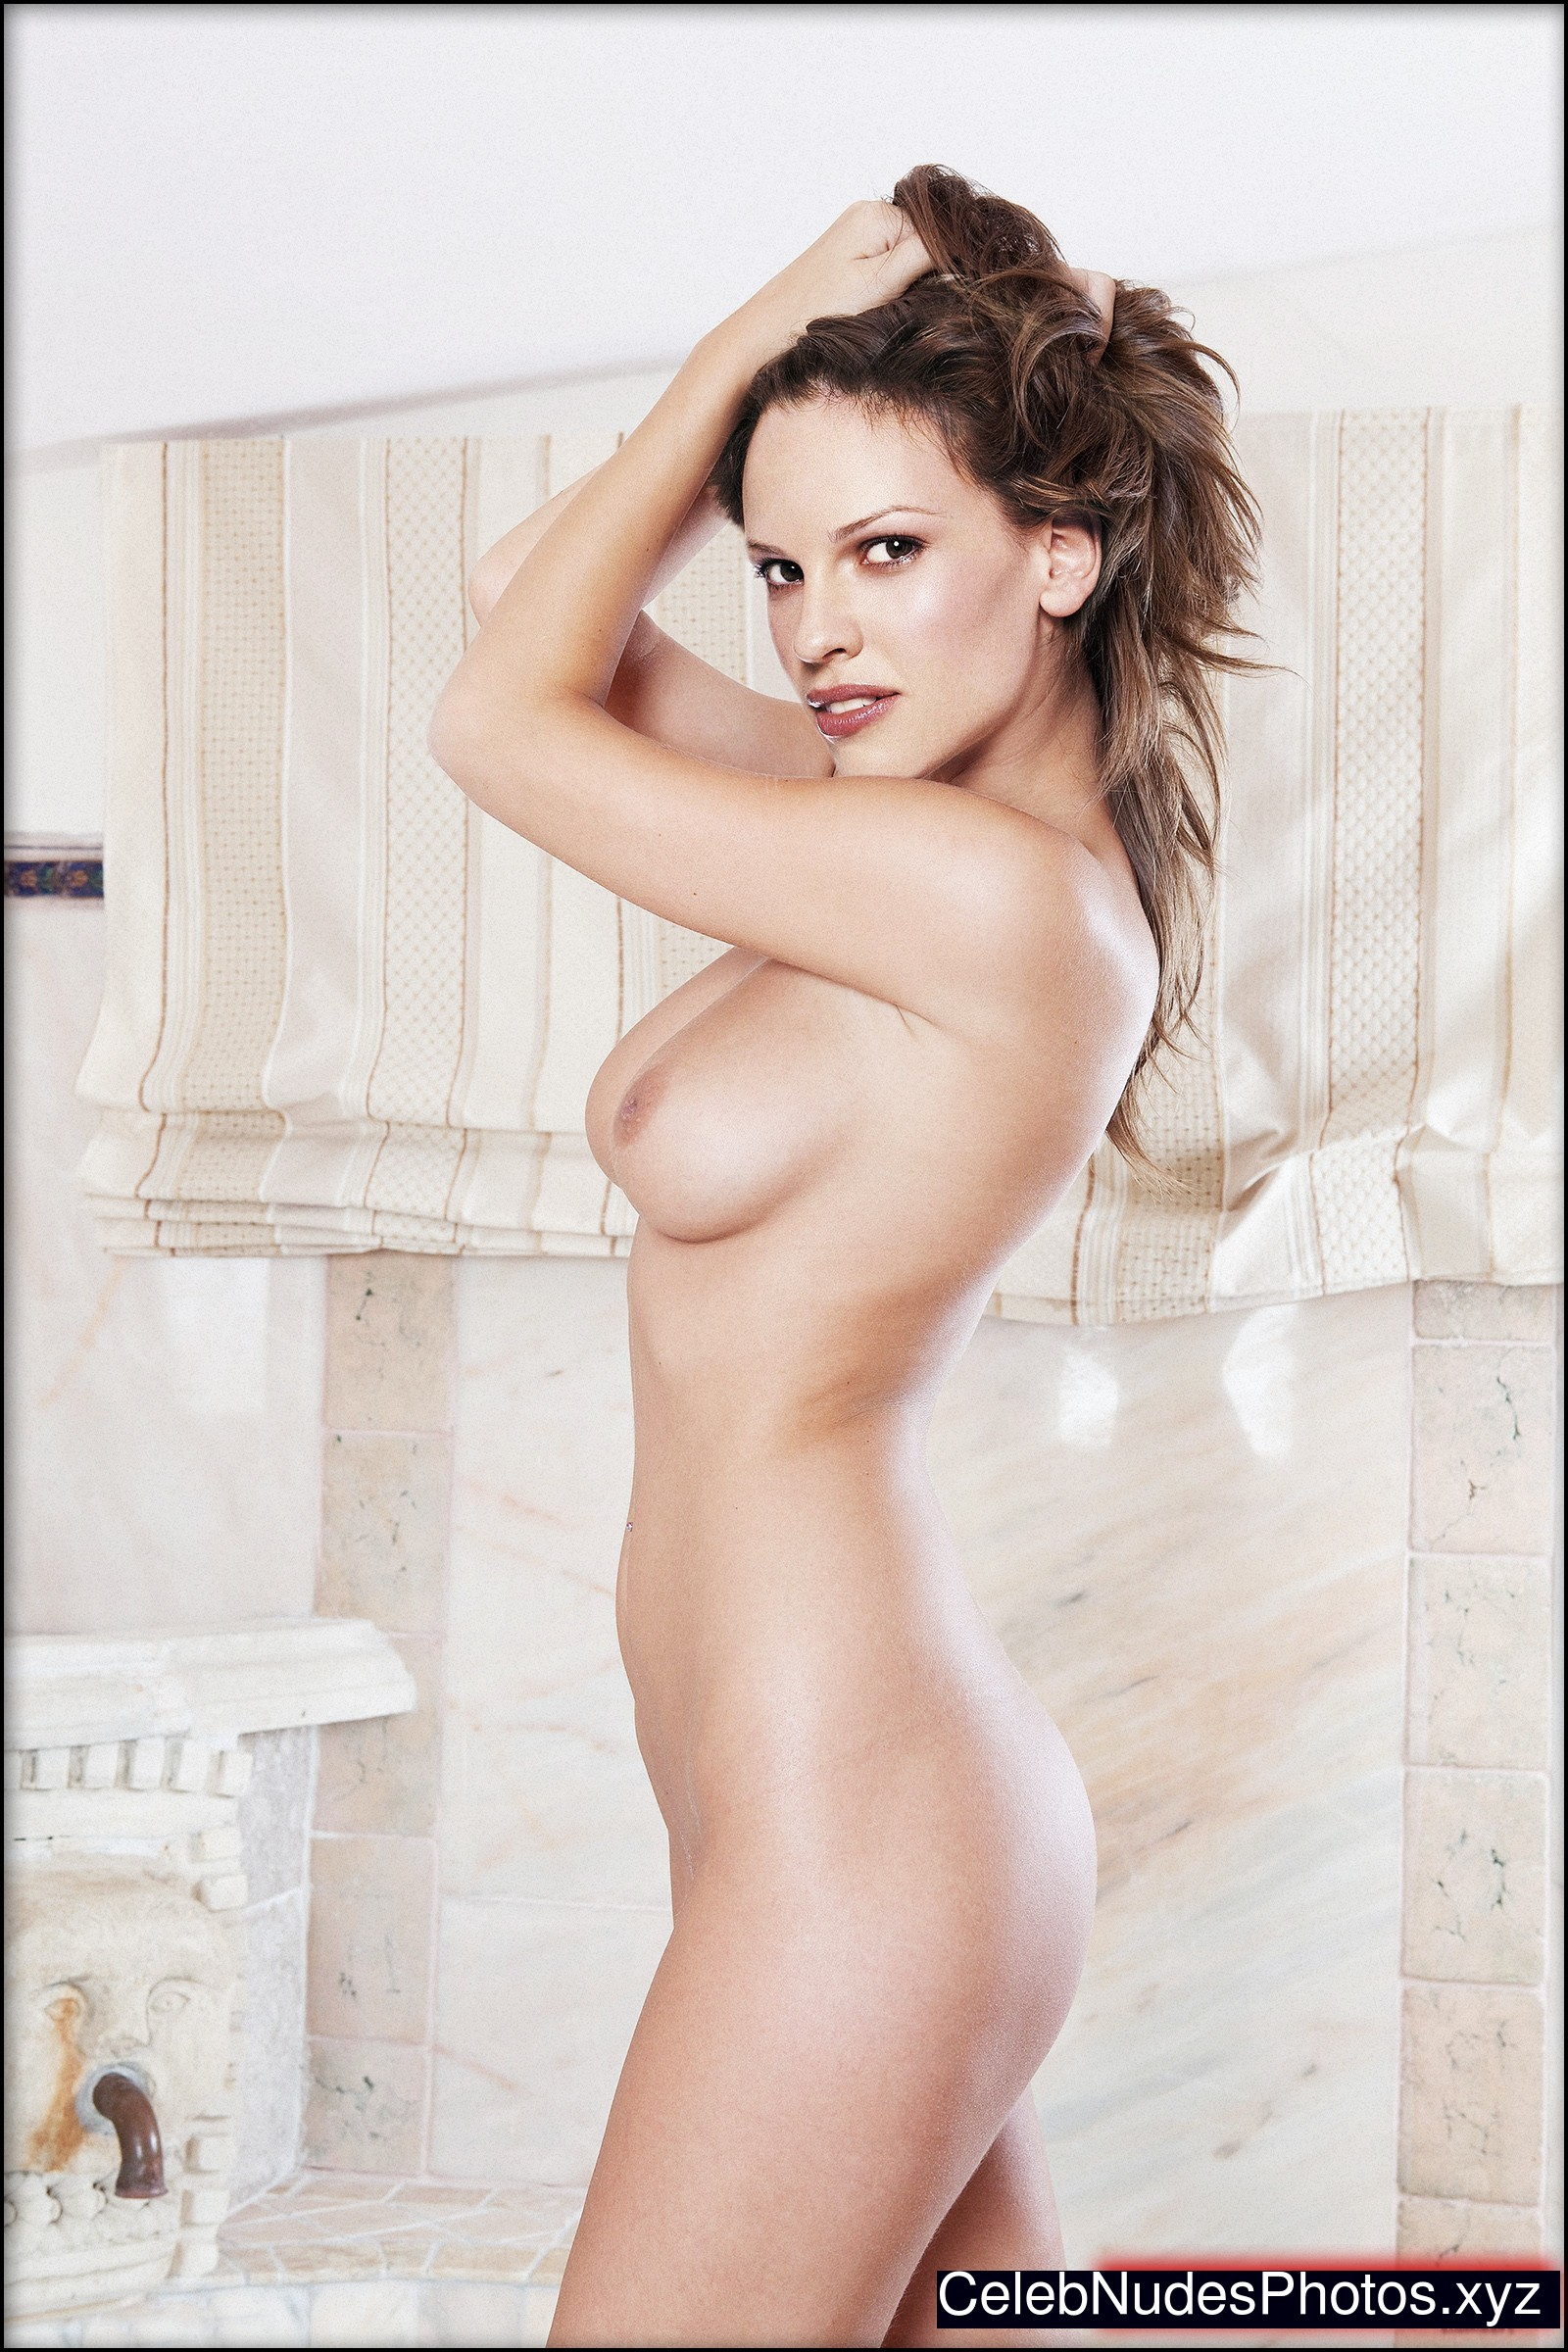 Hilary swank real nude